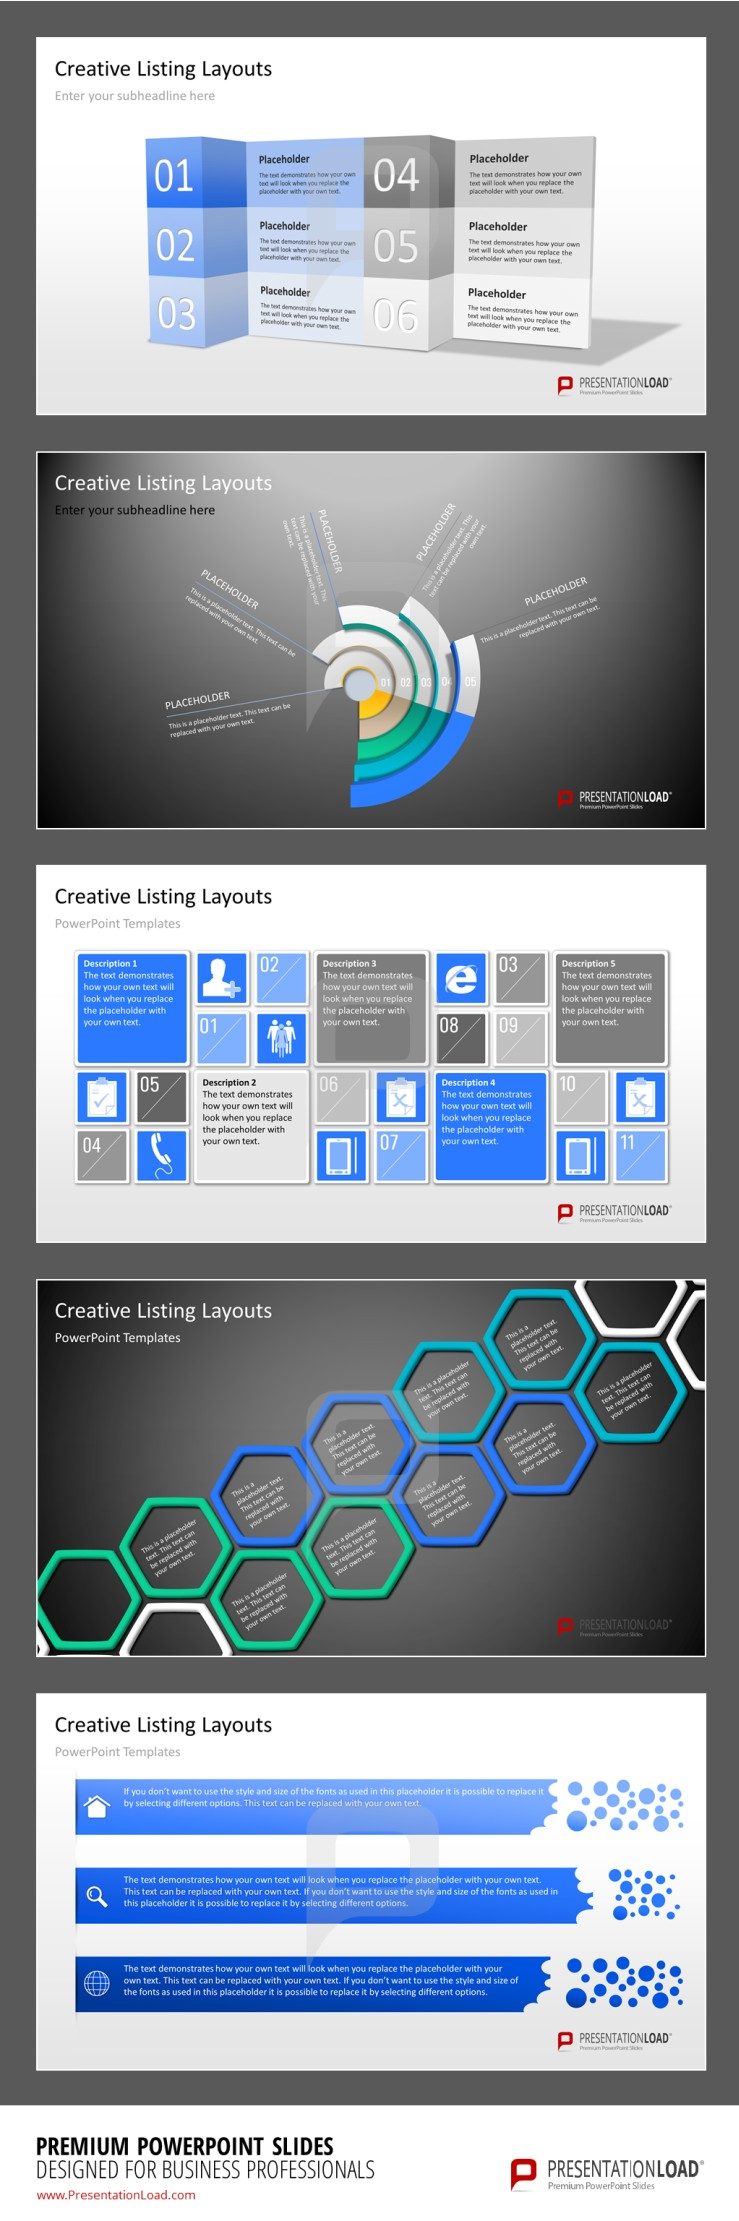 Creative Listings PowerPoint Template The listing layouts have all ...